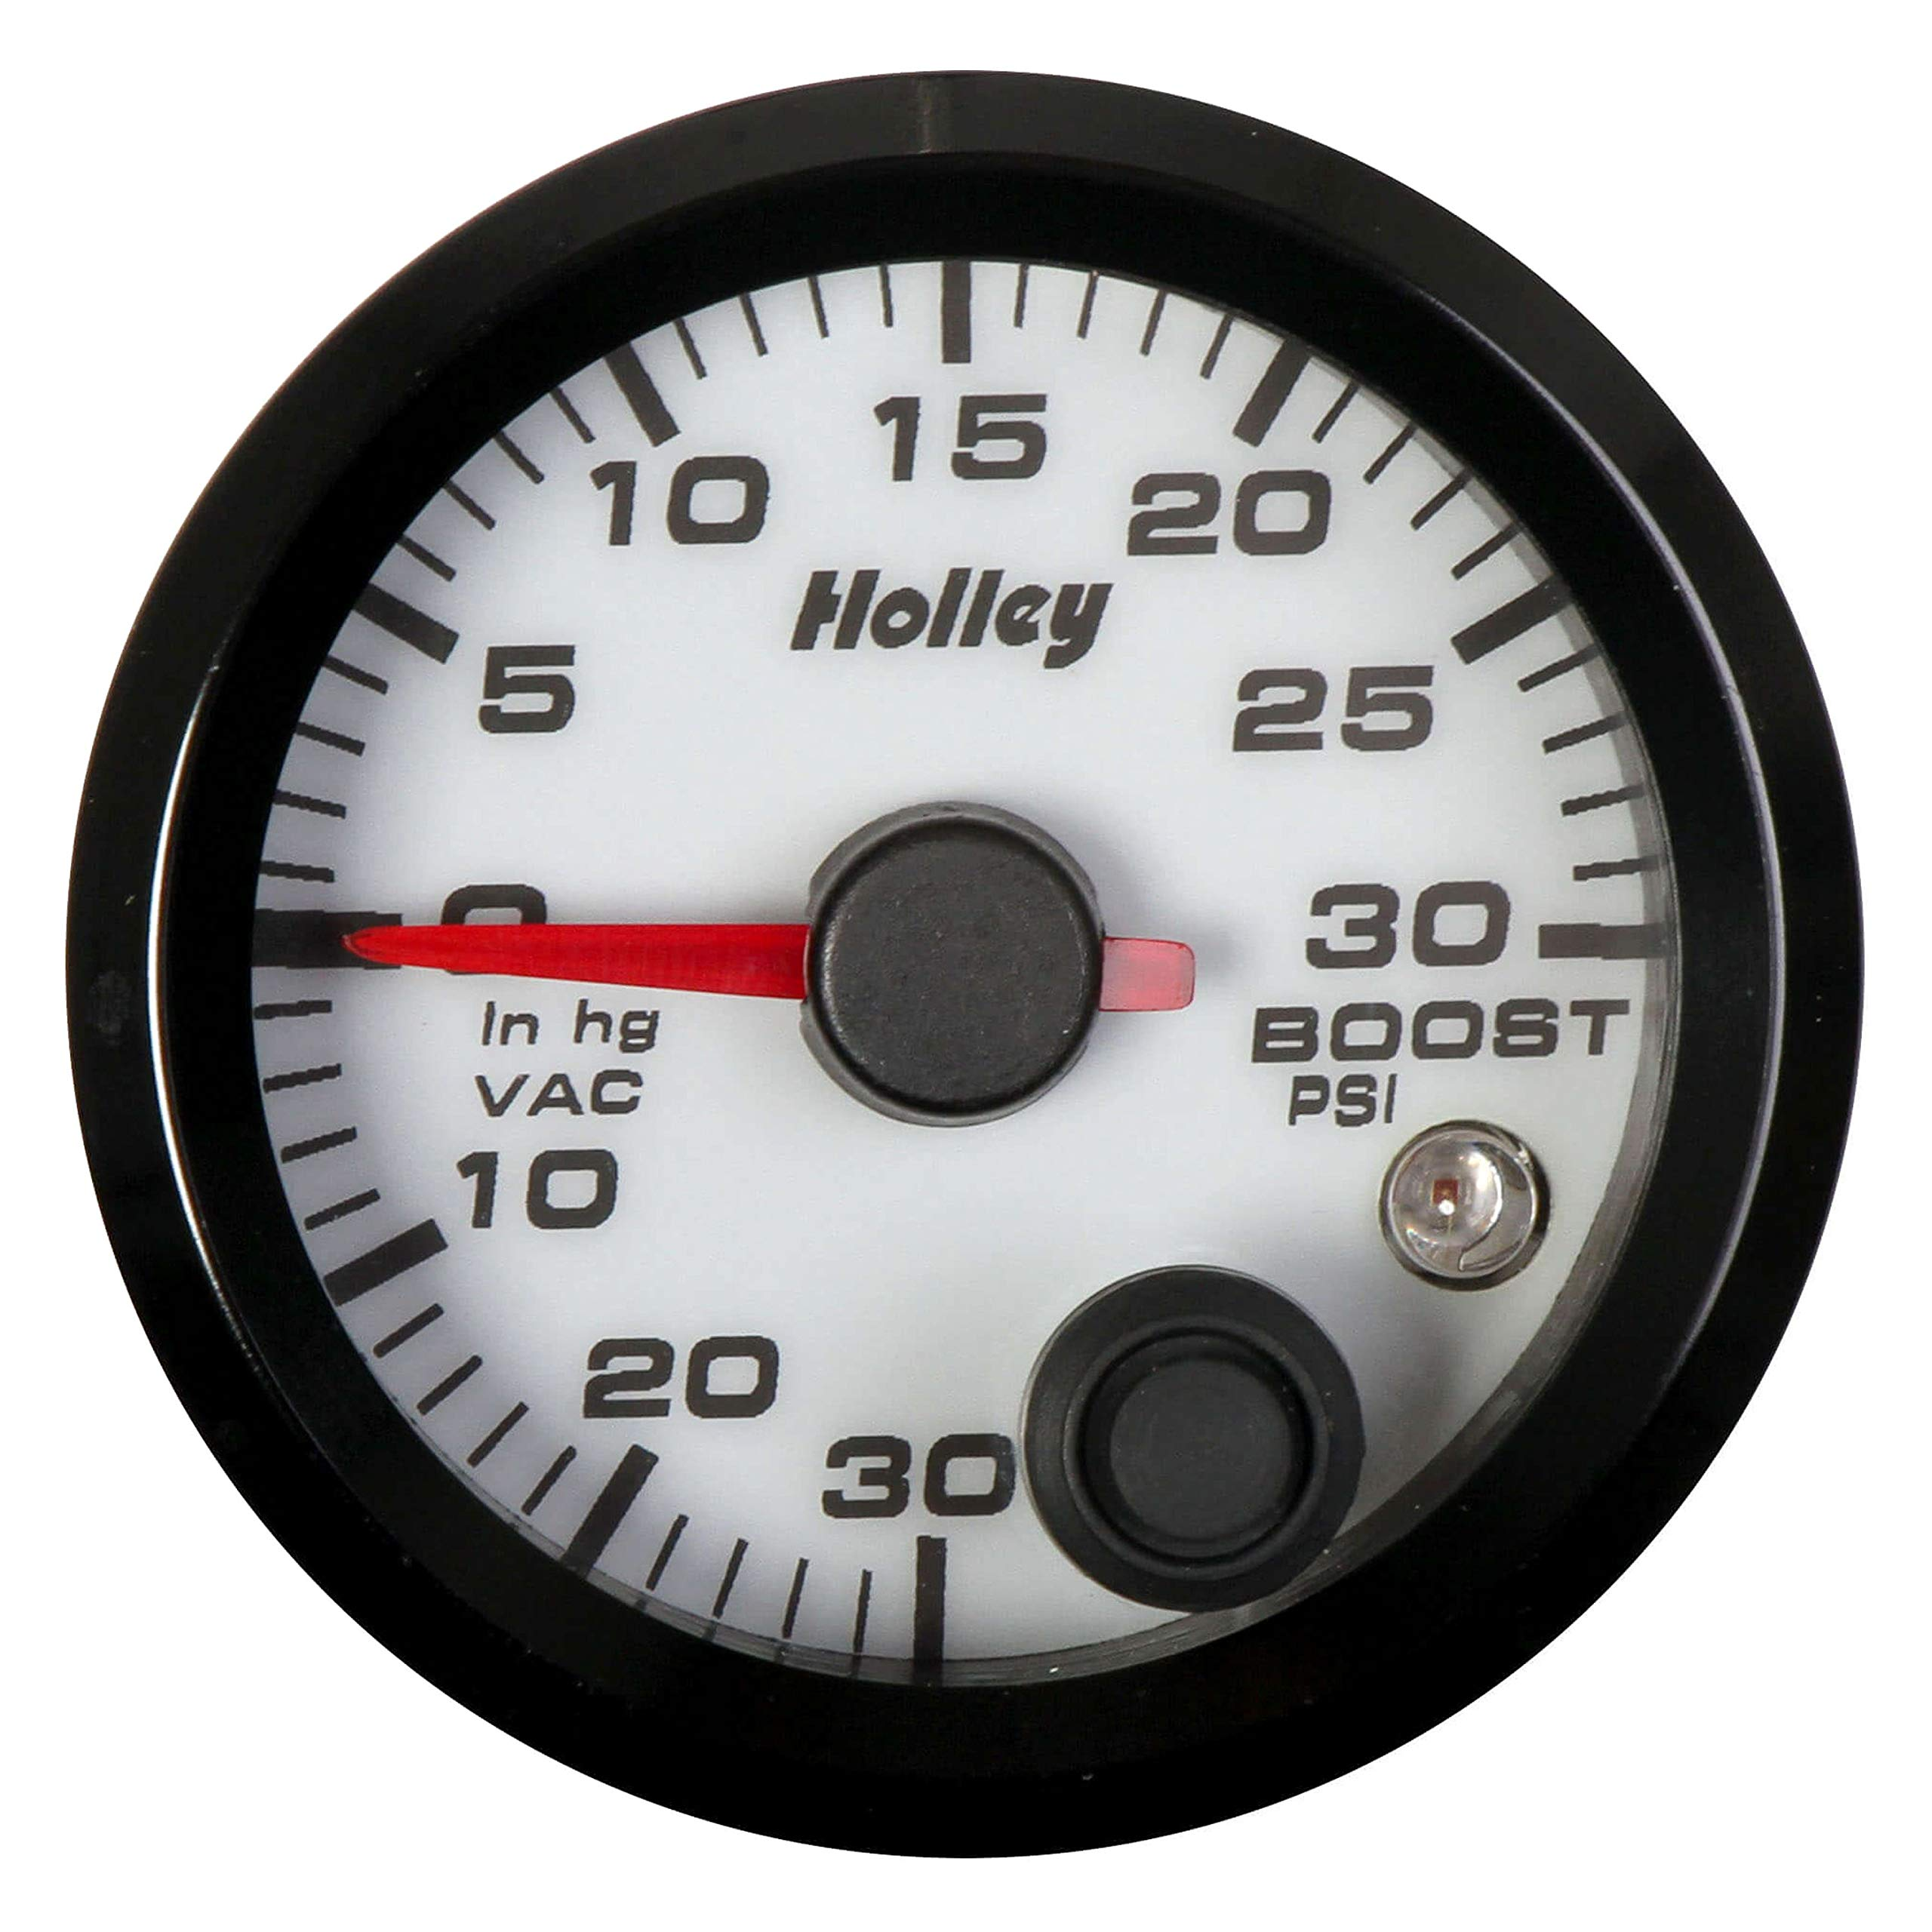 Holley 26-606W - Analog Style Series 2-1/16'' Vacuum/Boost Gauge, White, 30InHg/30 PSI by Holley